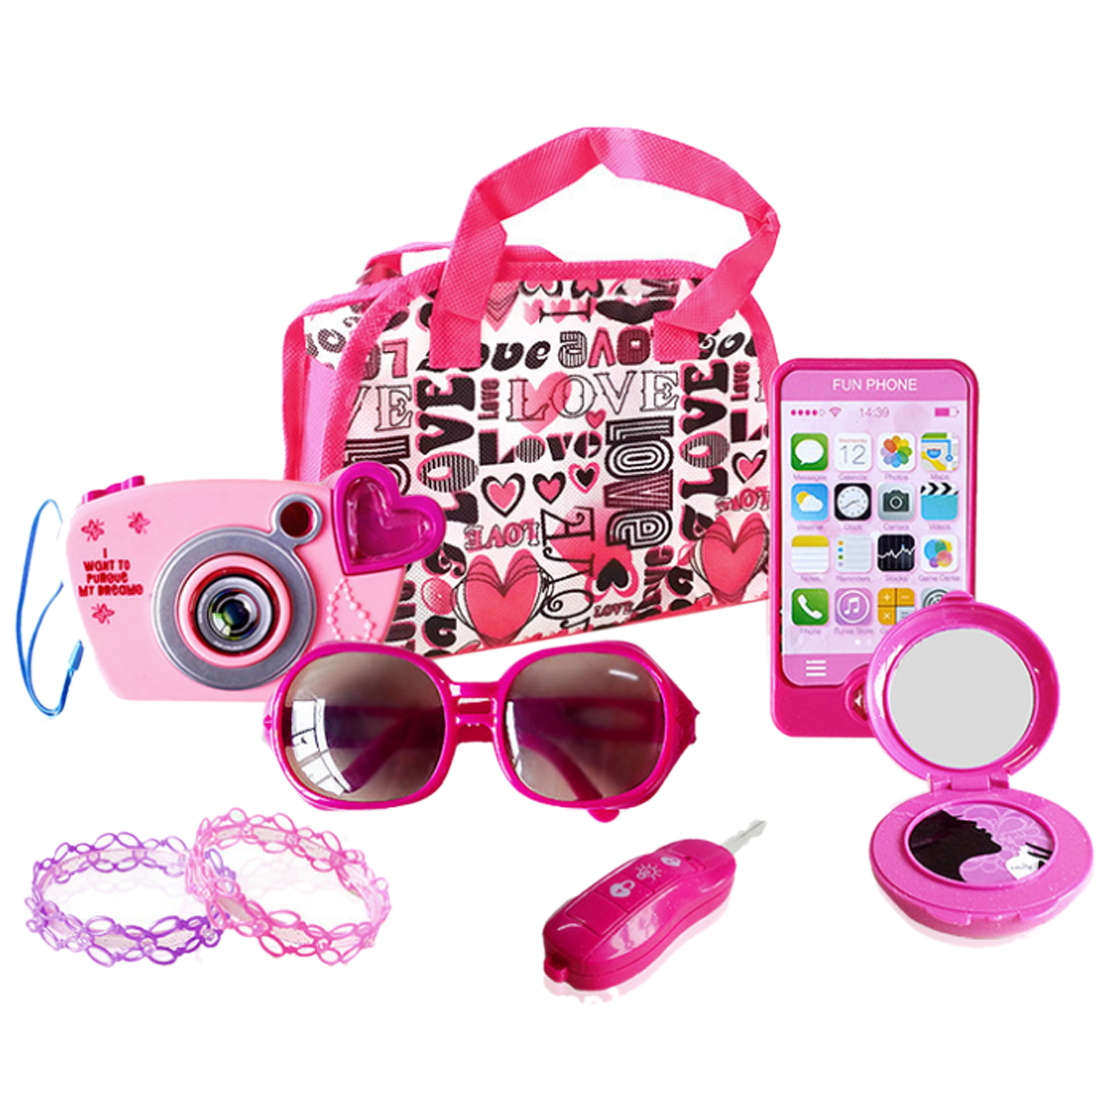 Pretend Play Camera Ornament Kit Little Girls Camera Jewelry Decoration Toy Set Cosmetics Makeup Toys For Girl Kids 2019